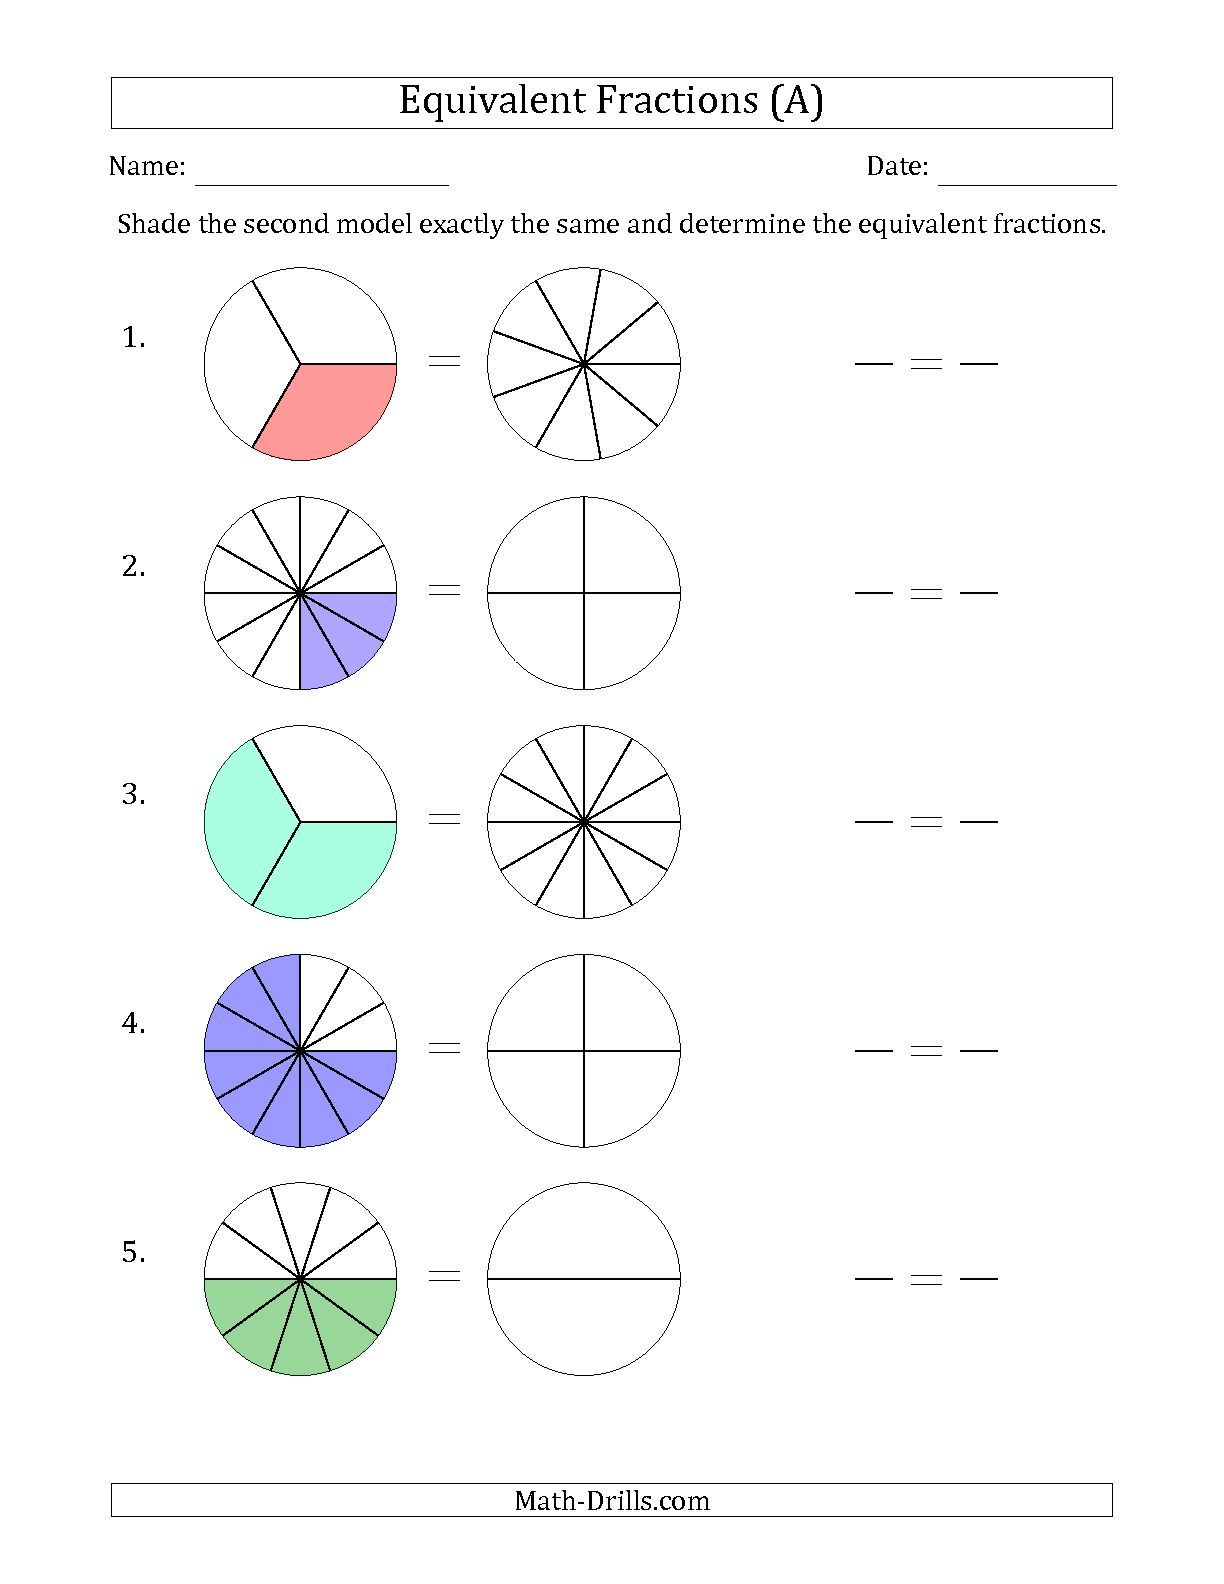 The Equivalent Fractions Models (A) math worksheet from the ...